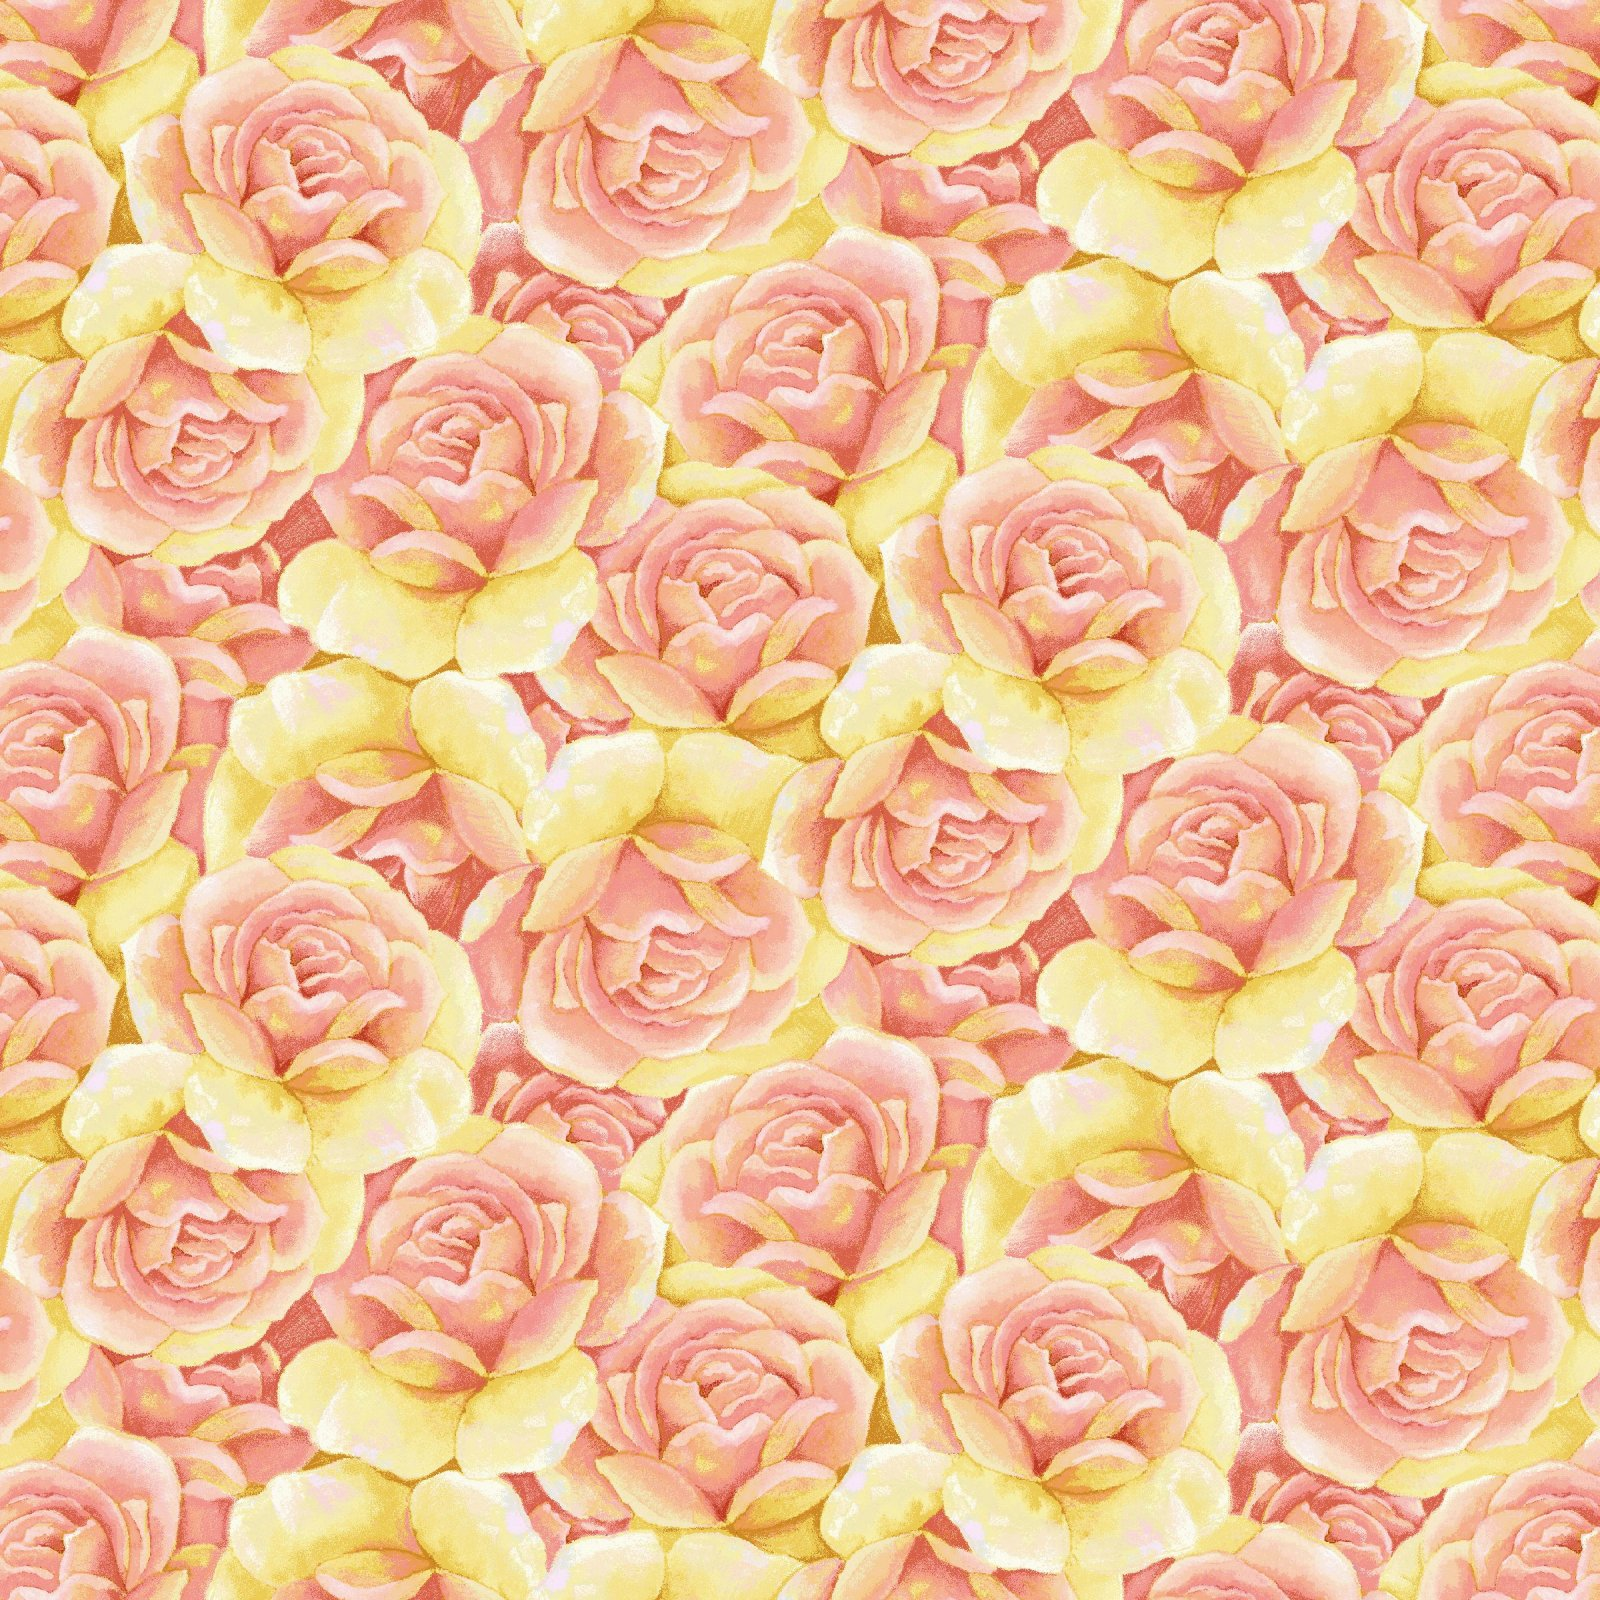 HG-Garden Inspirations 9356-24 Rose - Packed Roses